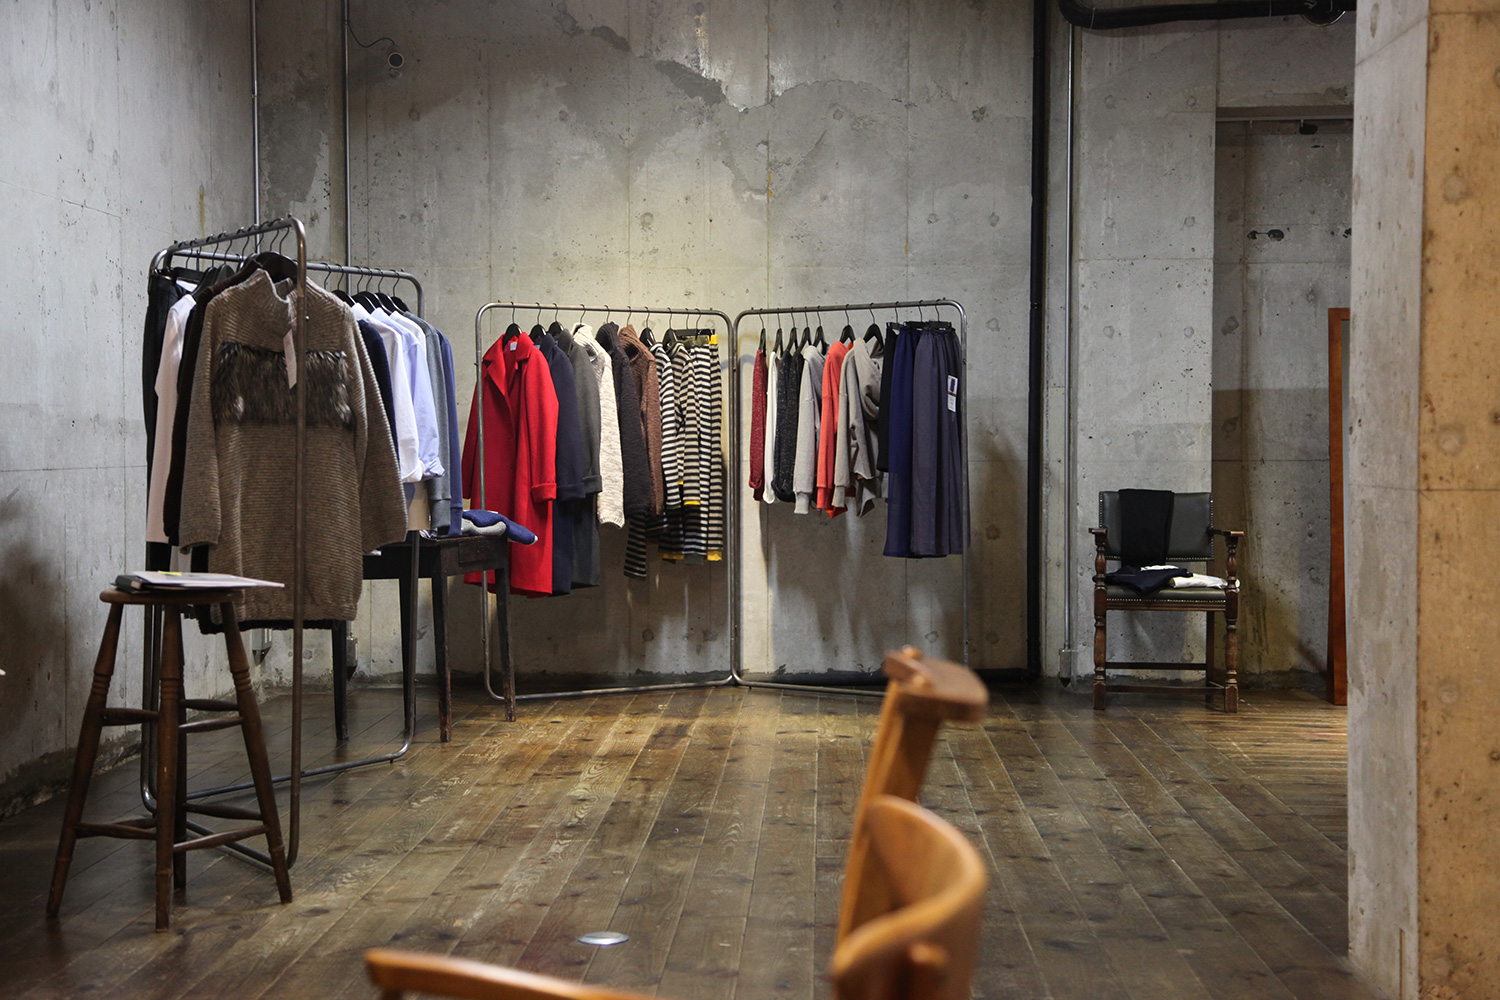 【A】RIE CO.,LTD 2020 Autumn & Winter Collection 3/10-3/12 @ studio and space ivva | 渋谷区 | 東京都 | 日本